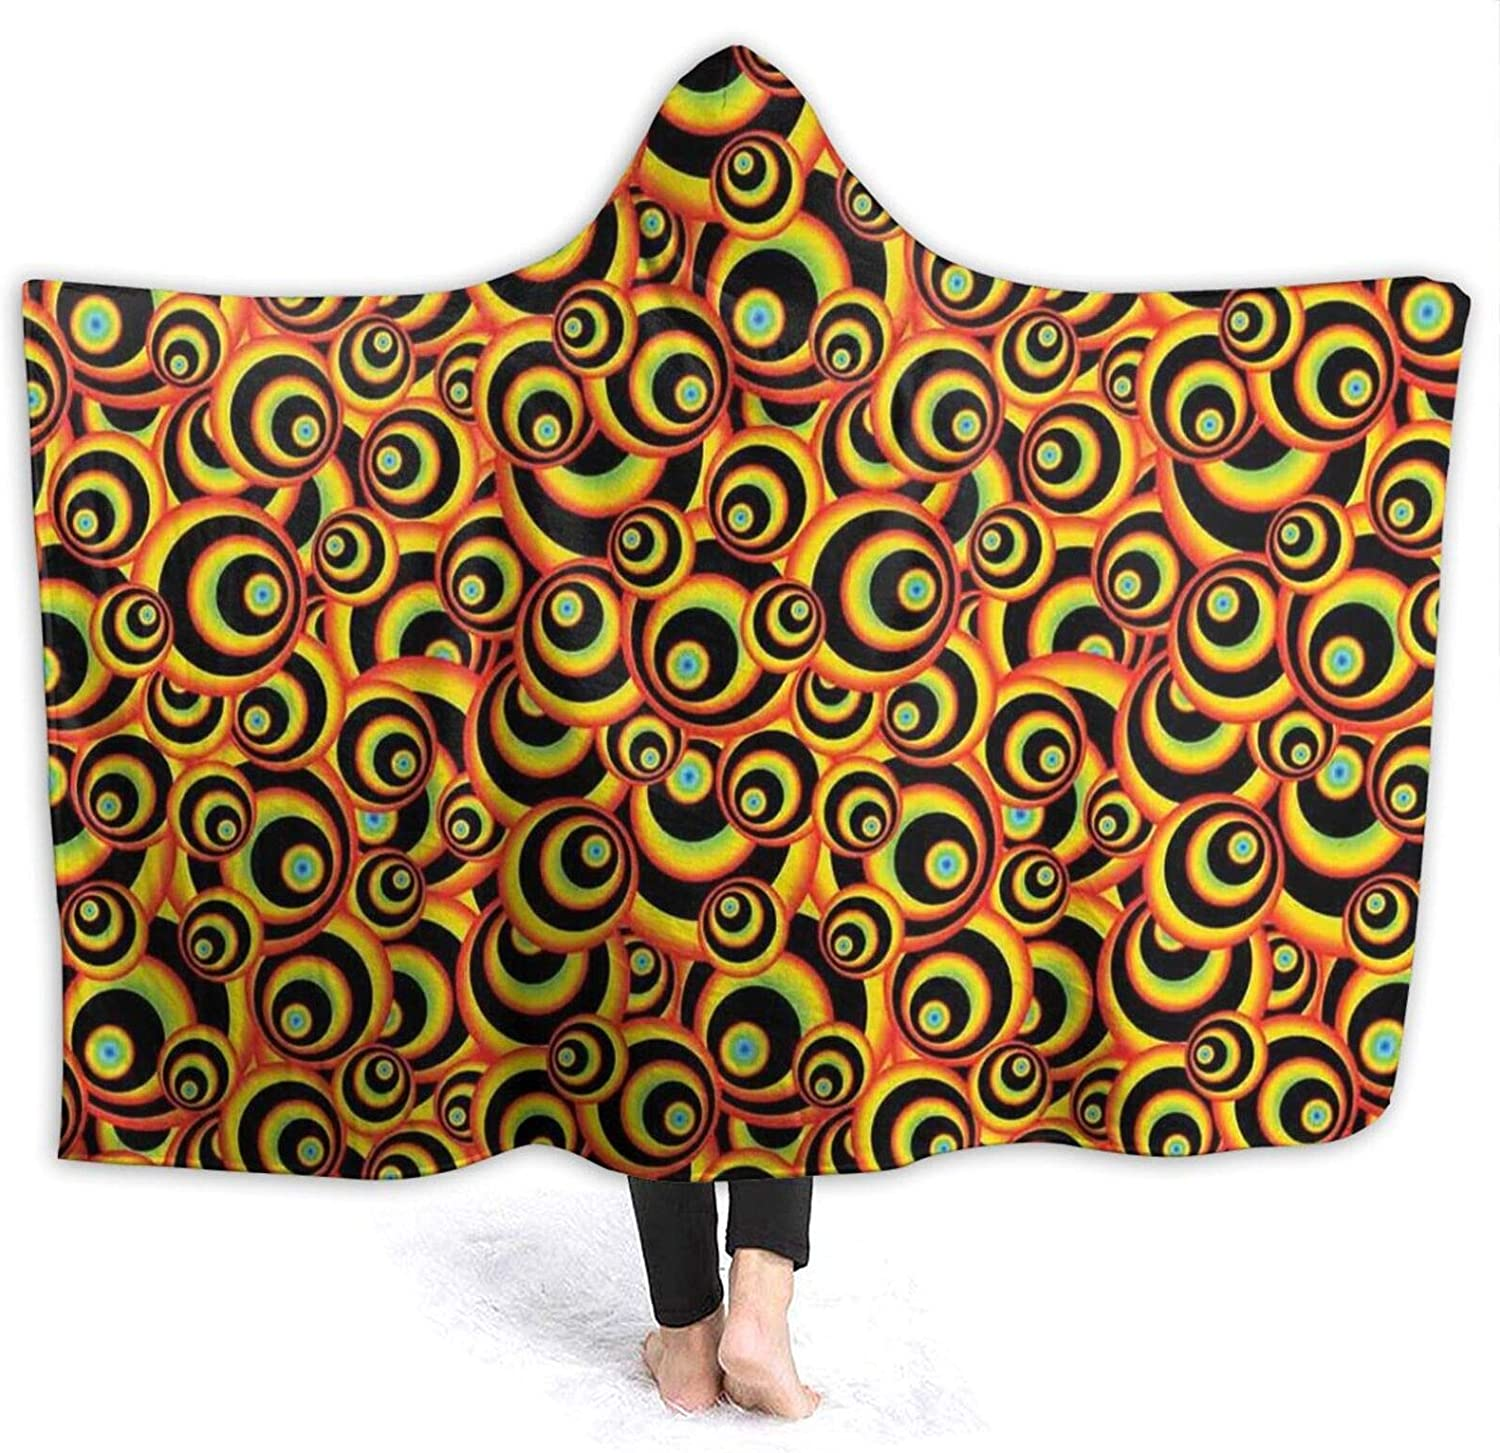 Manufacturer direct delivery Hooded Blanket Anti-Pilling Flannel Bargain sale Spiral Round Disc S Colorful